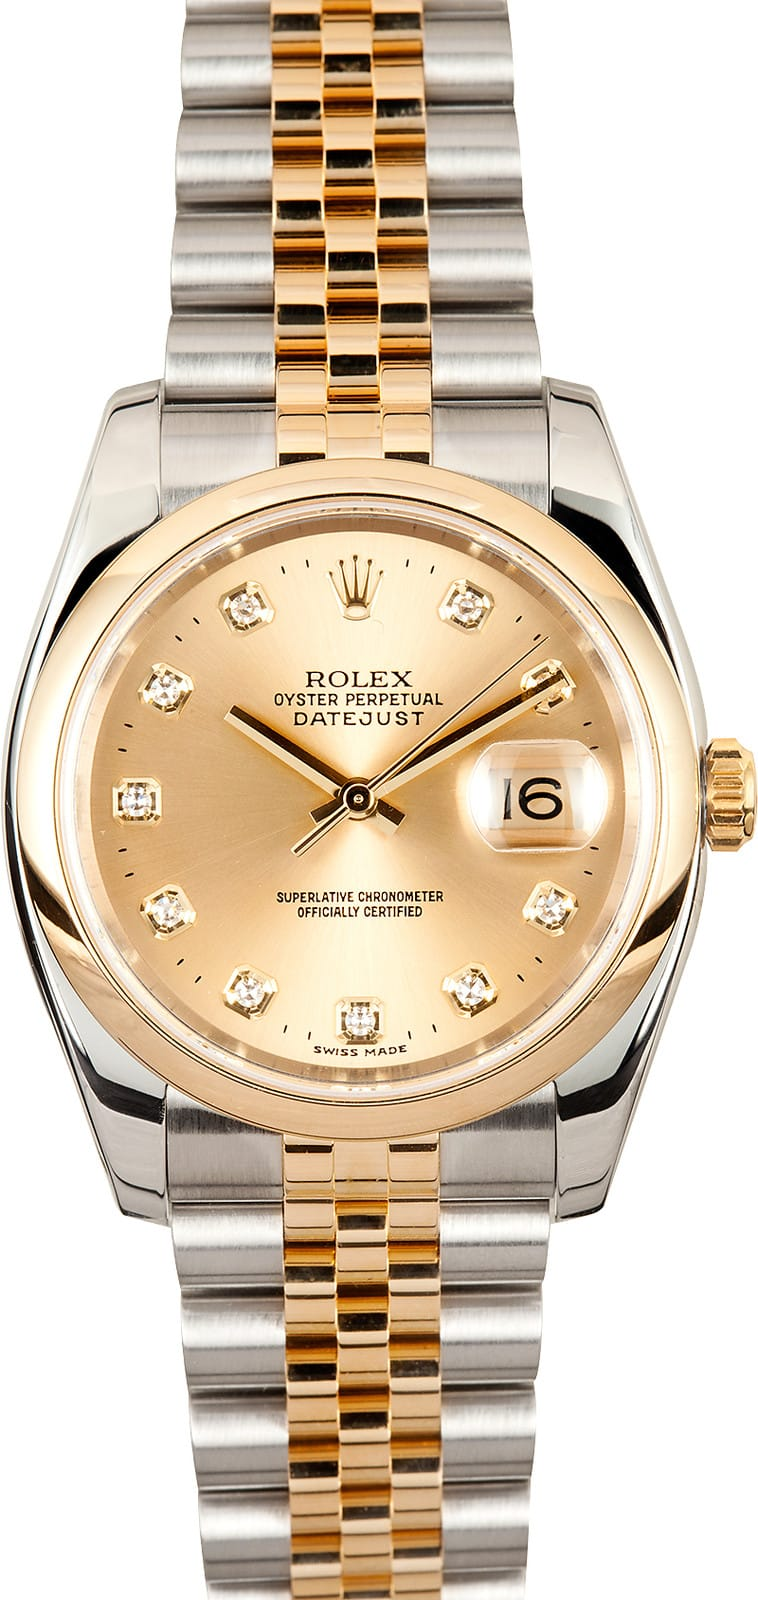 Diamond dial rolex datejust watch 116203 for Diamond dial watch